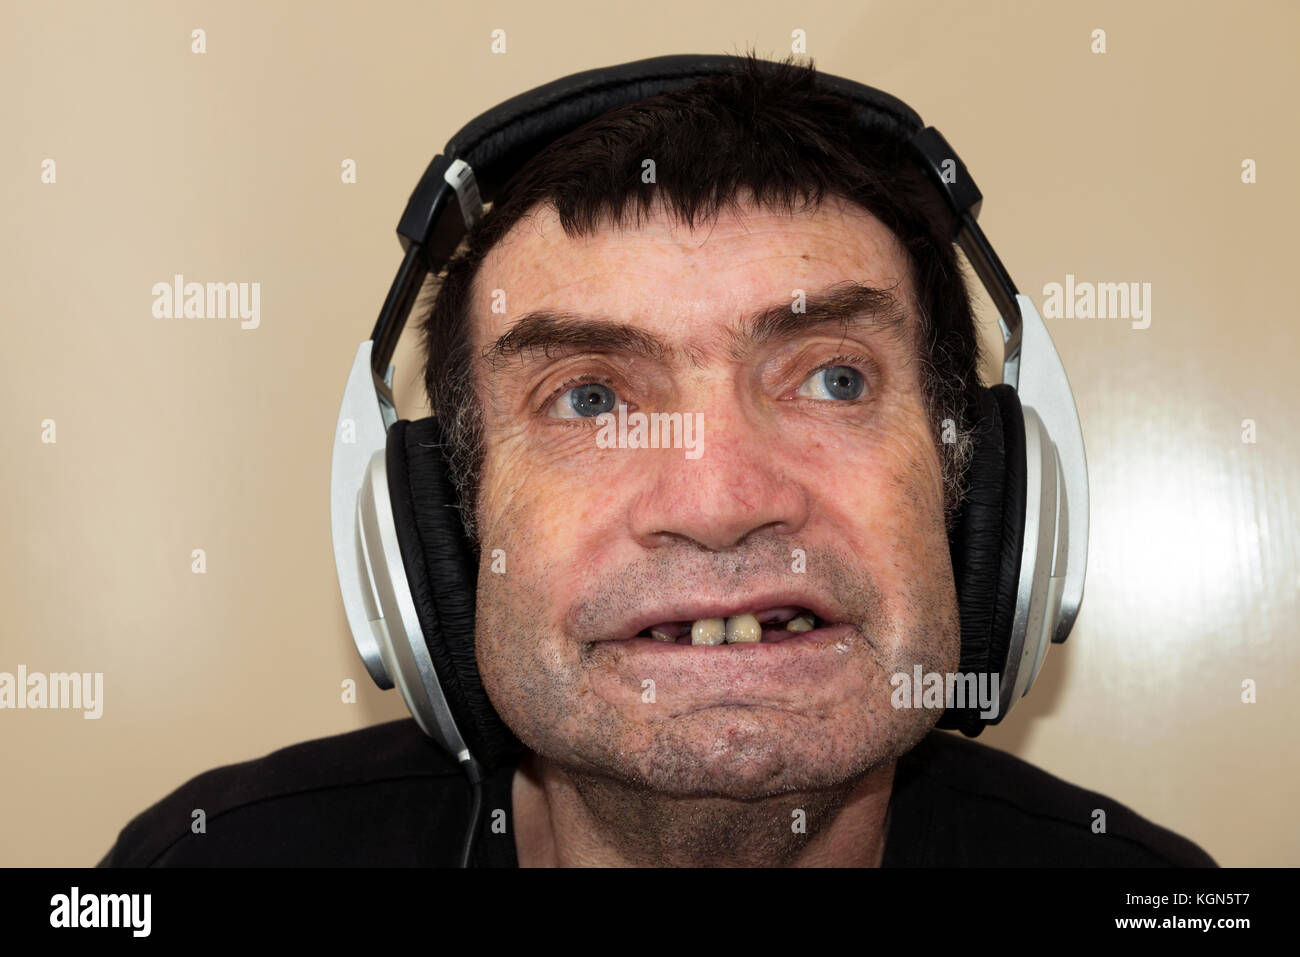 Man with learning difficulties listening to music - Stock Image